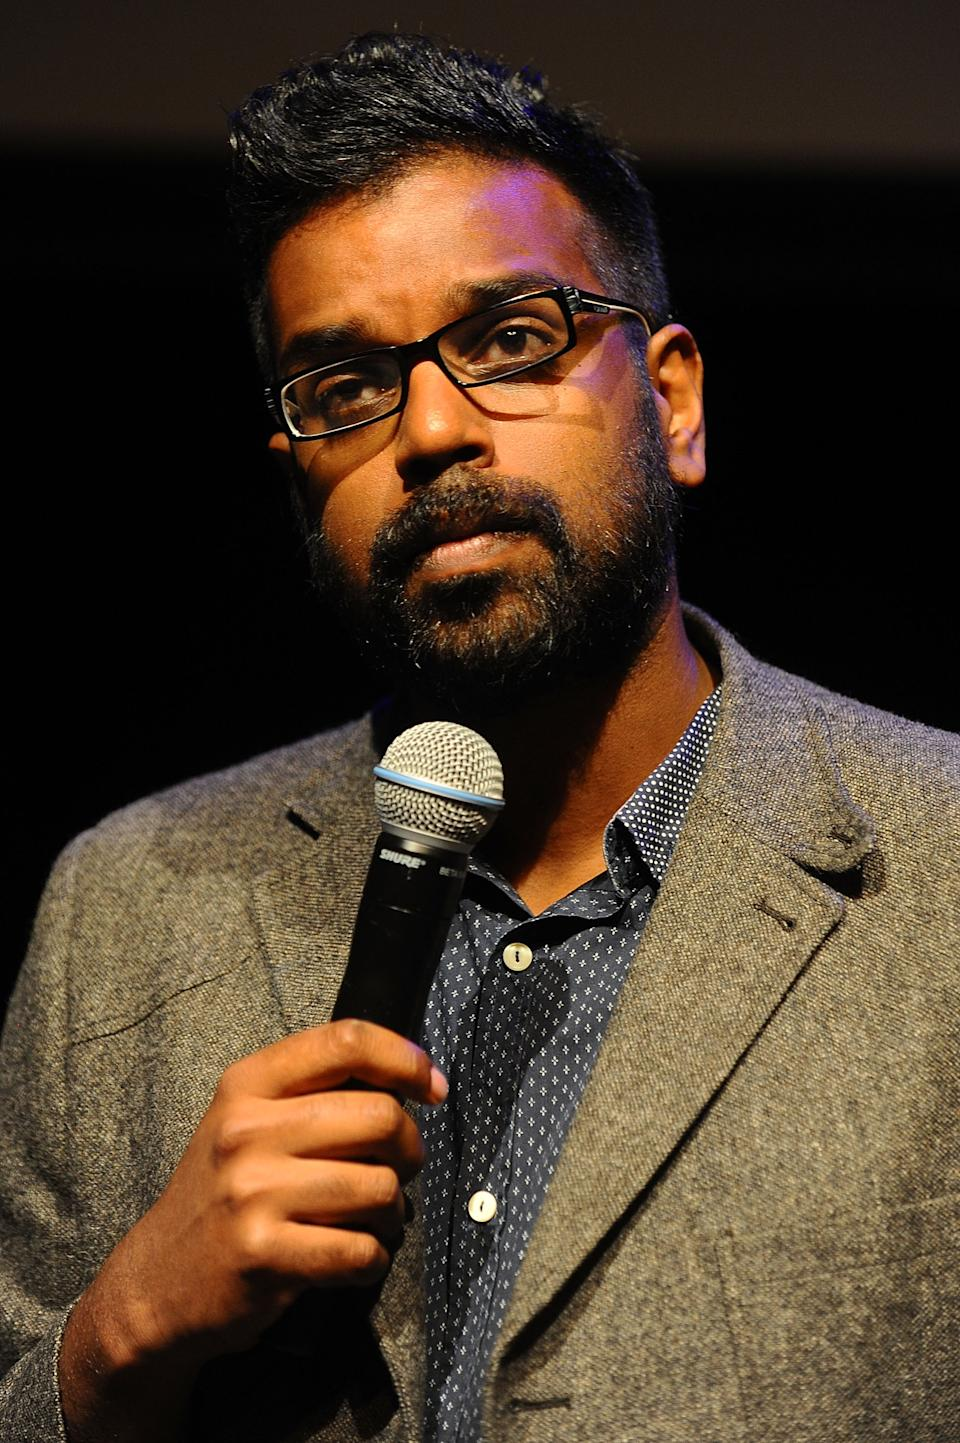 EDINBURGH, SCOTLAND - JULY 31:  Romesh Ranganathan performs during the Underbelly Press Launch at The Edinburgh Festival Fringe on July 31, 2013 in Edinburgh, Scotland.  (Photo by Scott Campbell/Getty Images)